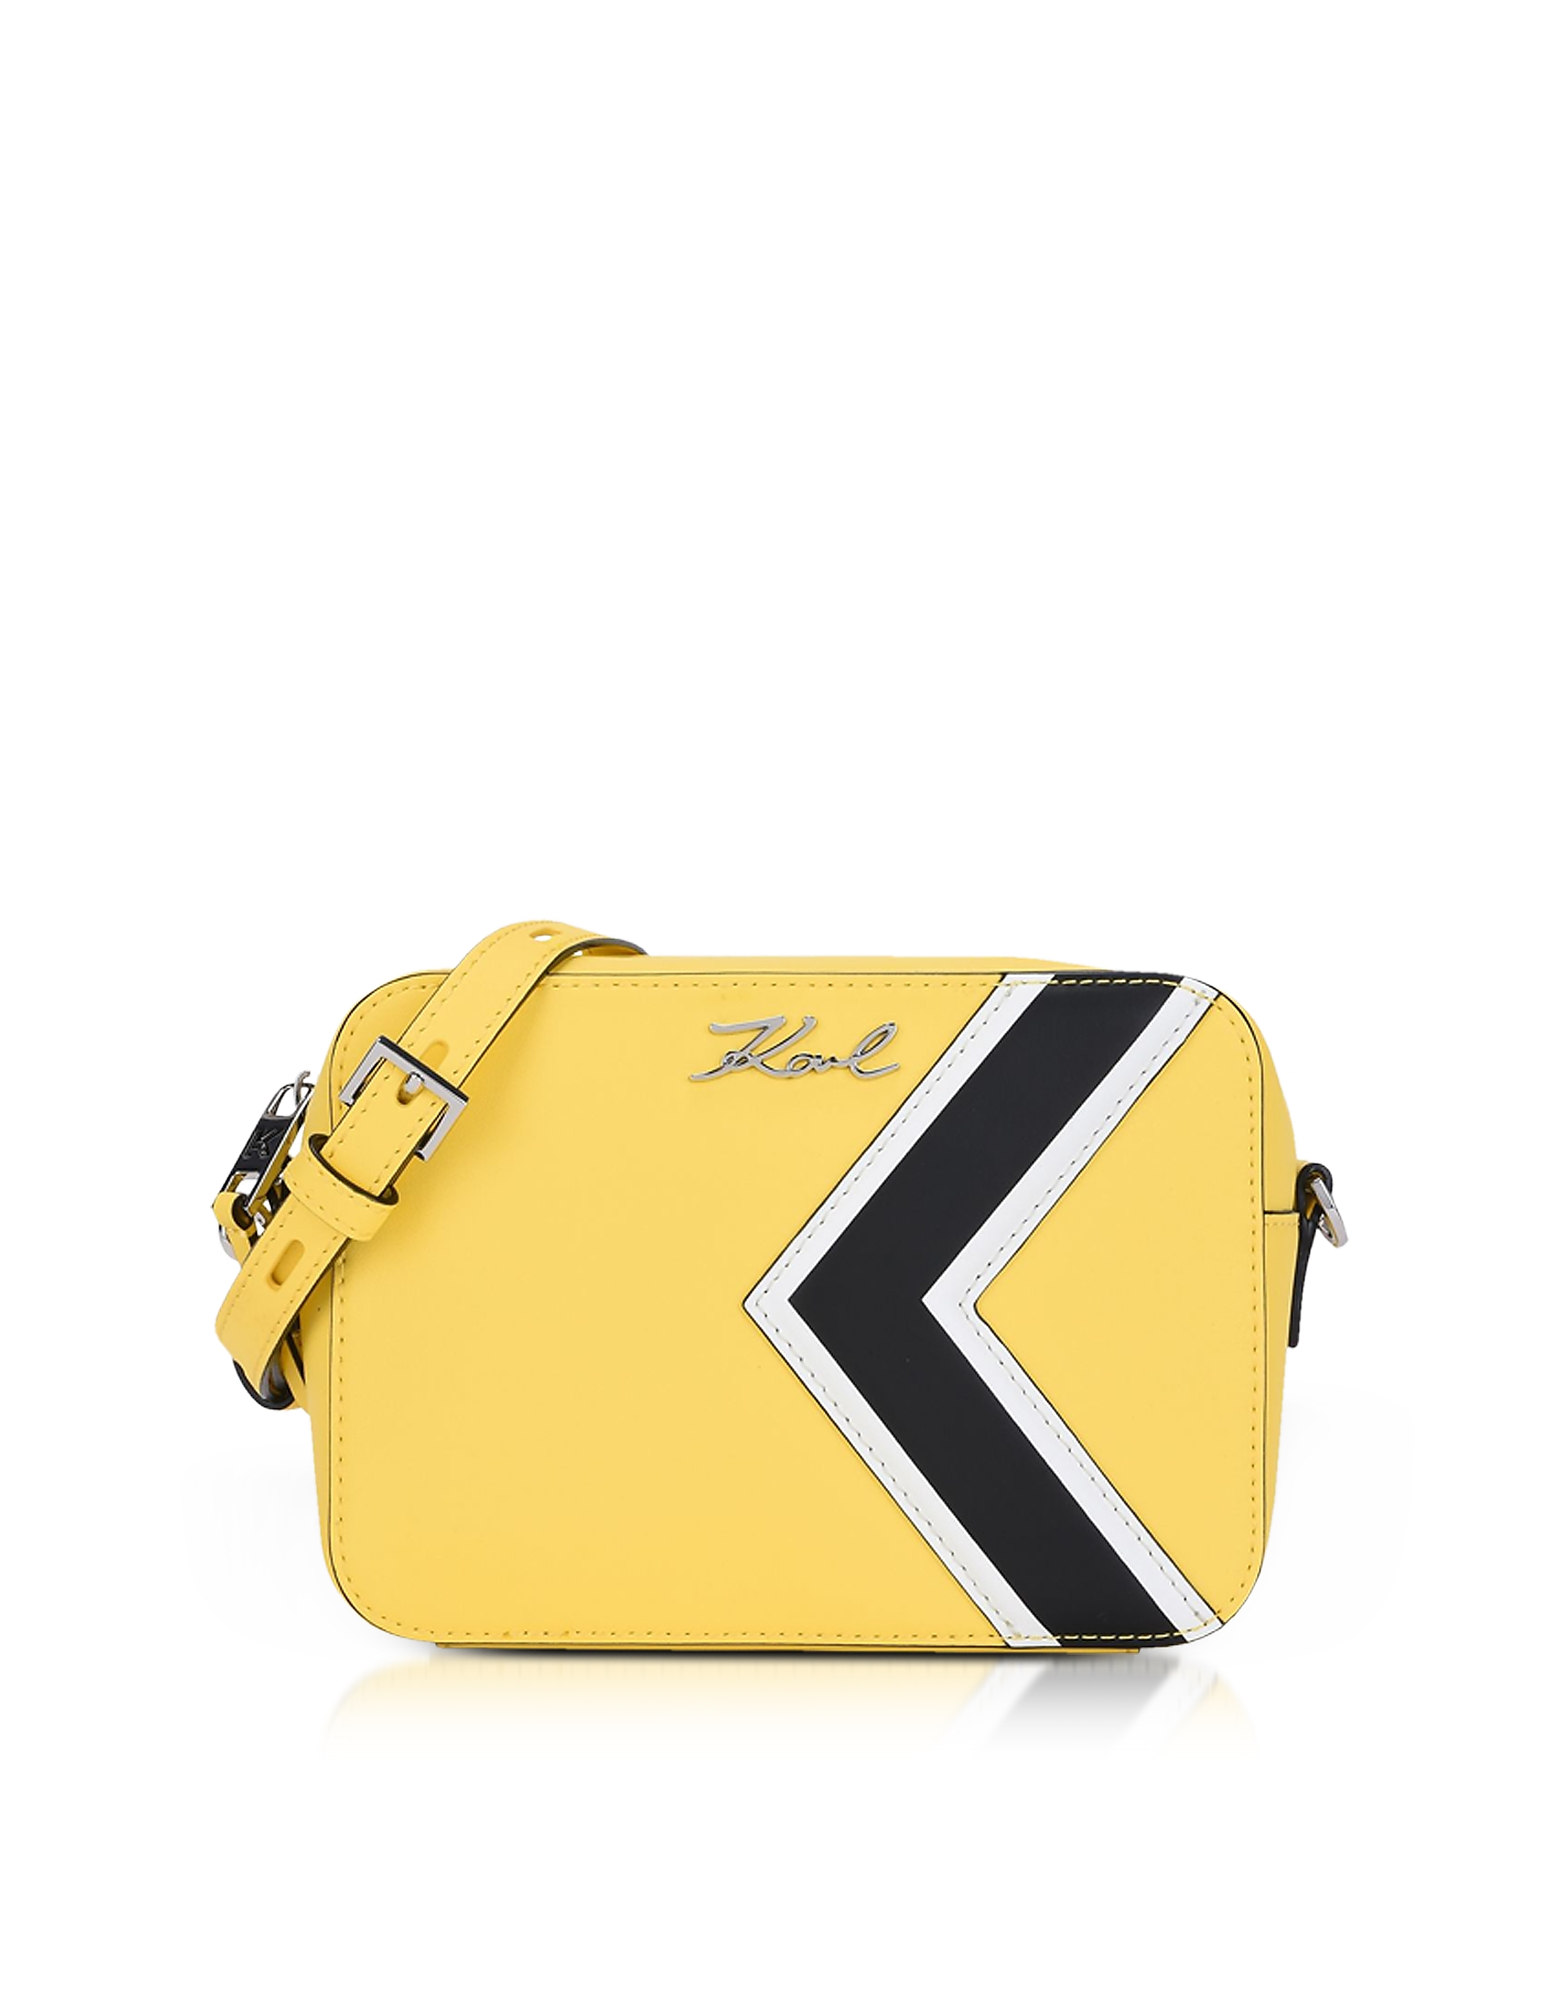 Karl Lagerfeld Handbags, K/Stripes Camera Bag